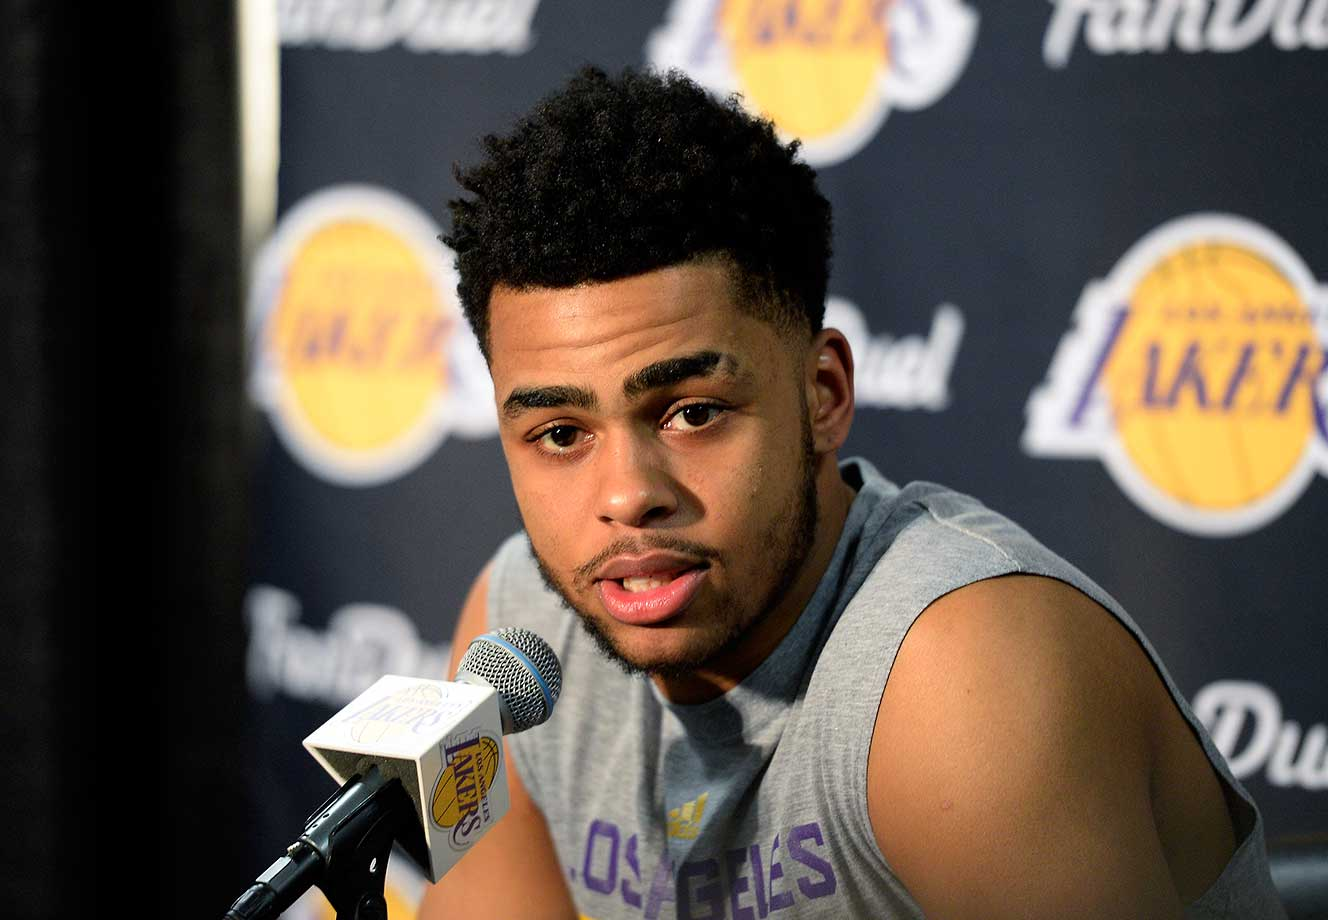 Here are some of the images that caught our eye on a day when the D'Angelo Russell controversy stole much of the spotlight, including his apology press conference.